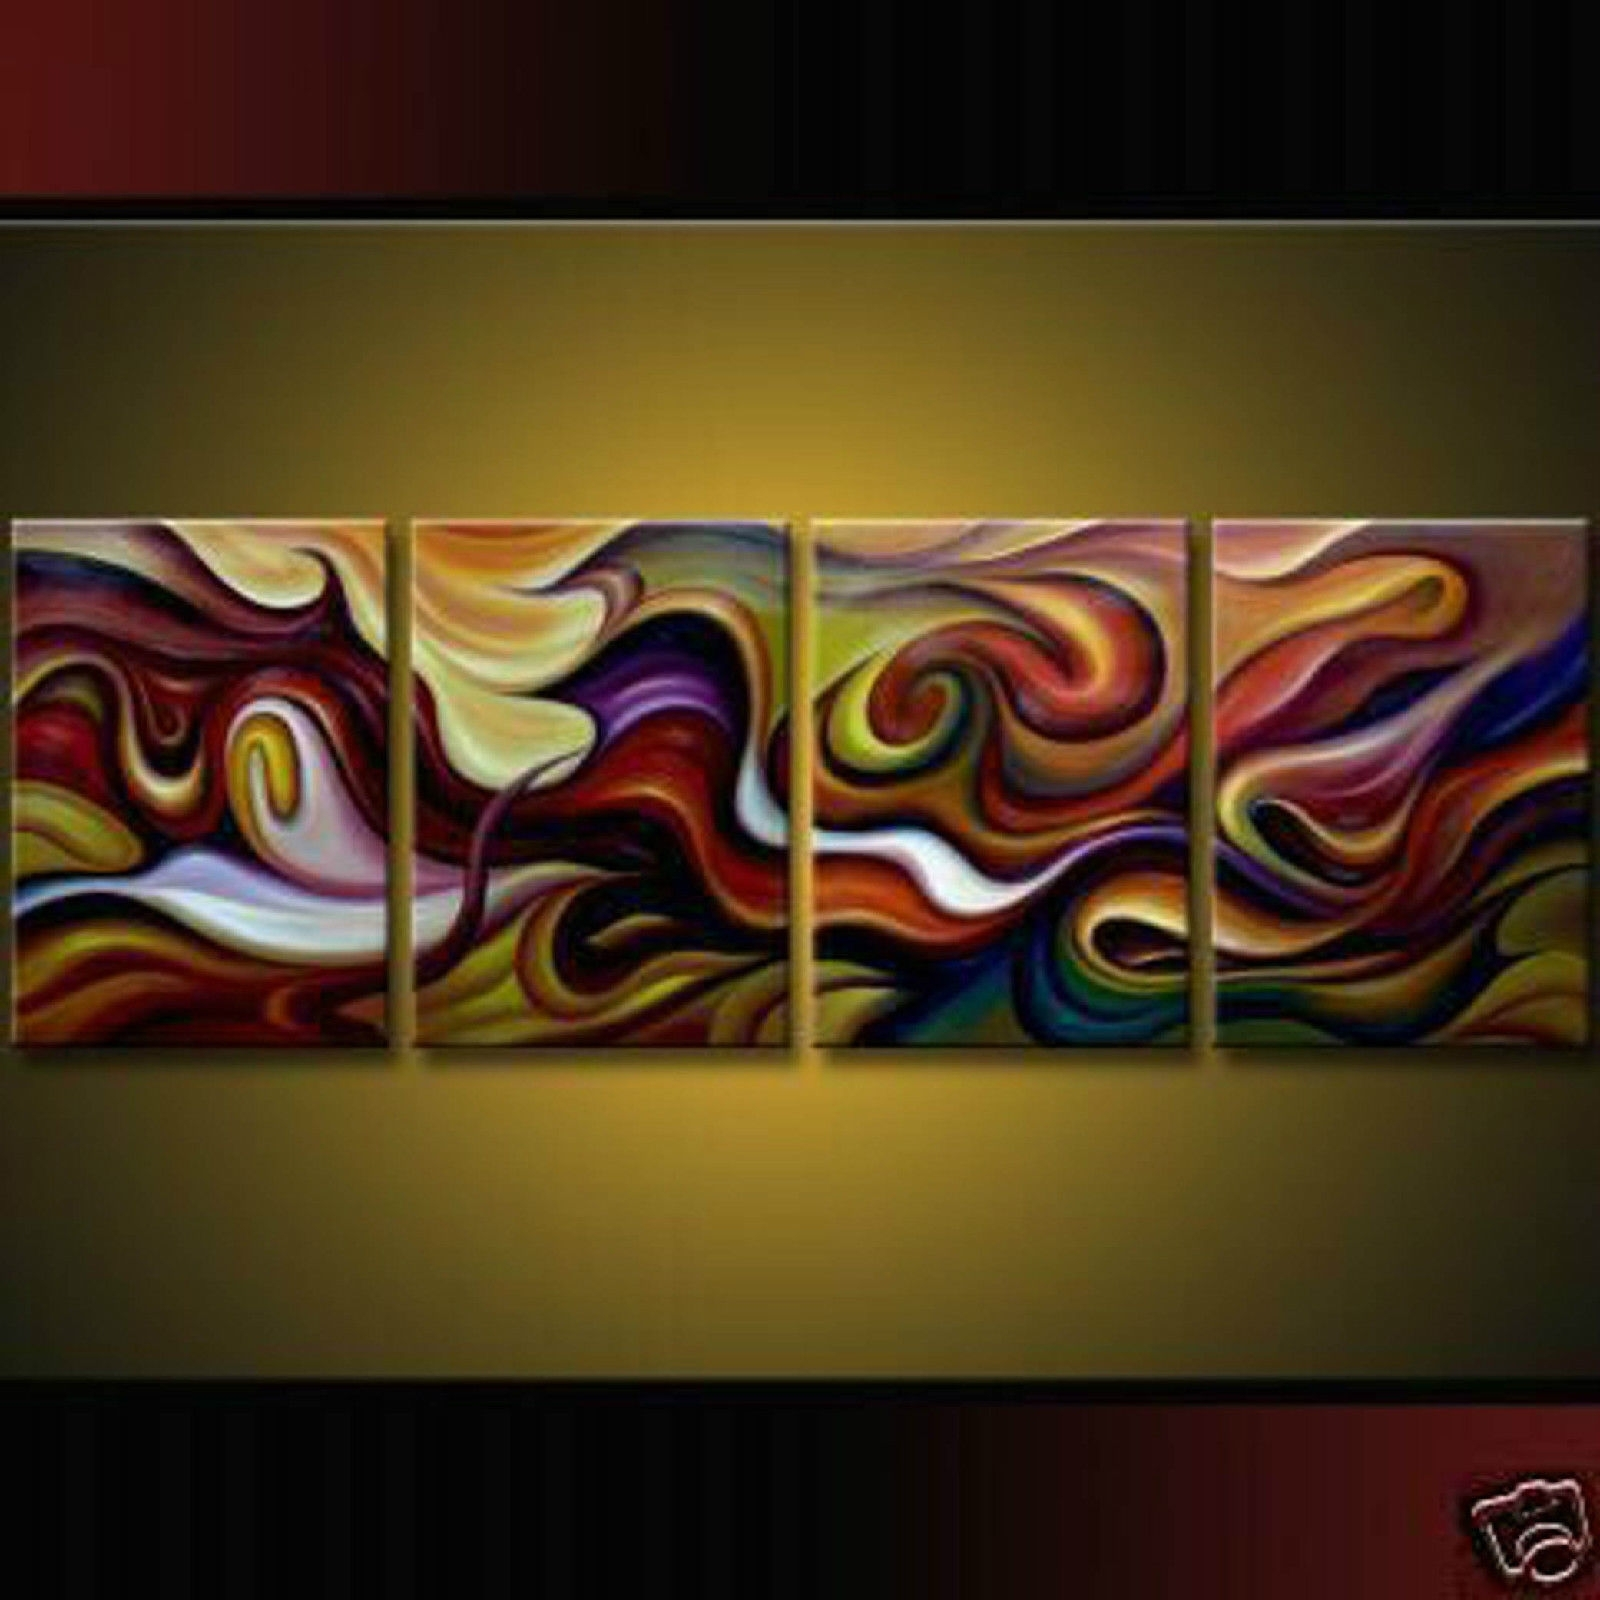 Modern Abstract Art Oil Painting Canvas – Dma Homes | #87055 Within Best And Newest Modern Abstract Huge Oil Painting Wall Art (View 15 of 20)